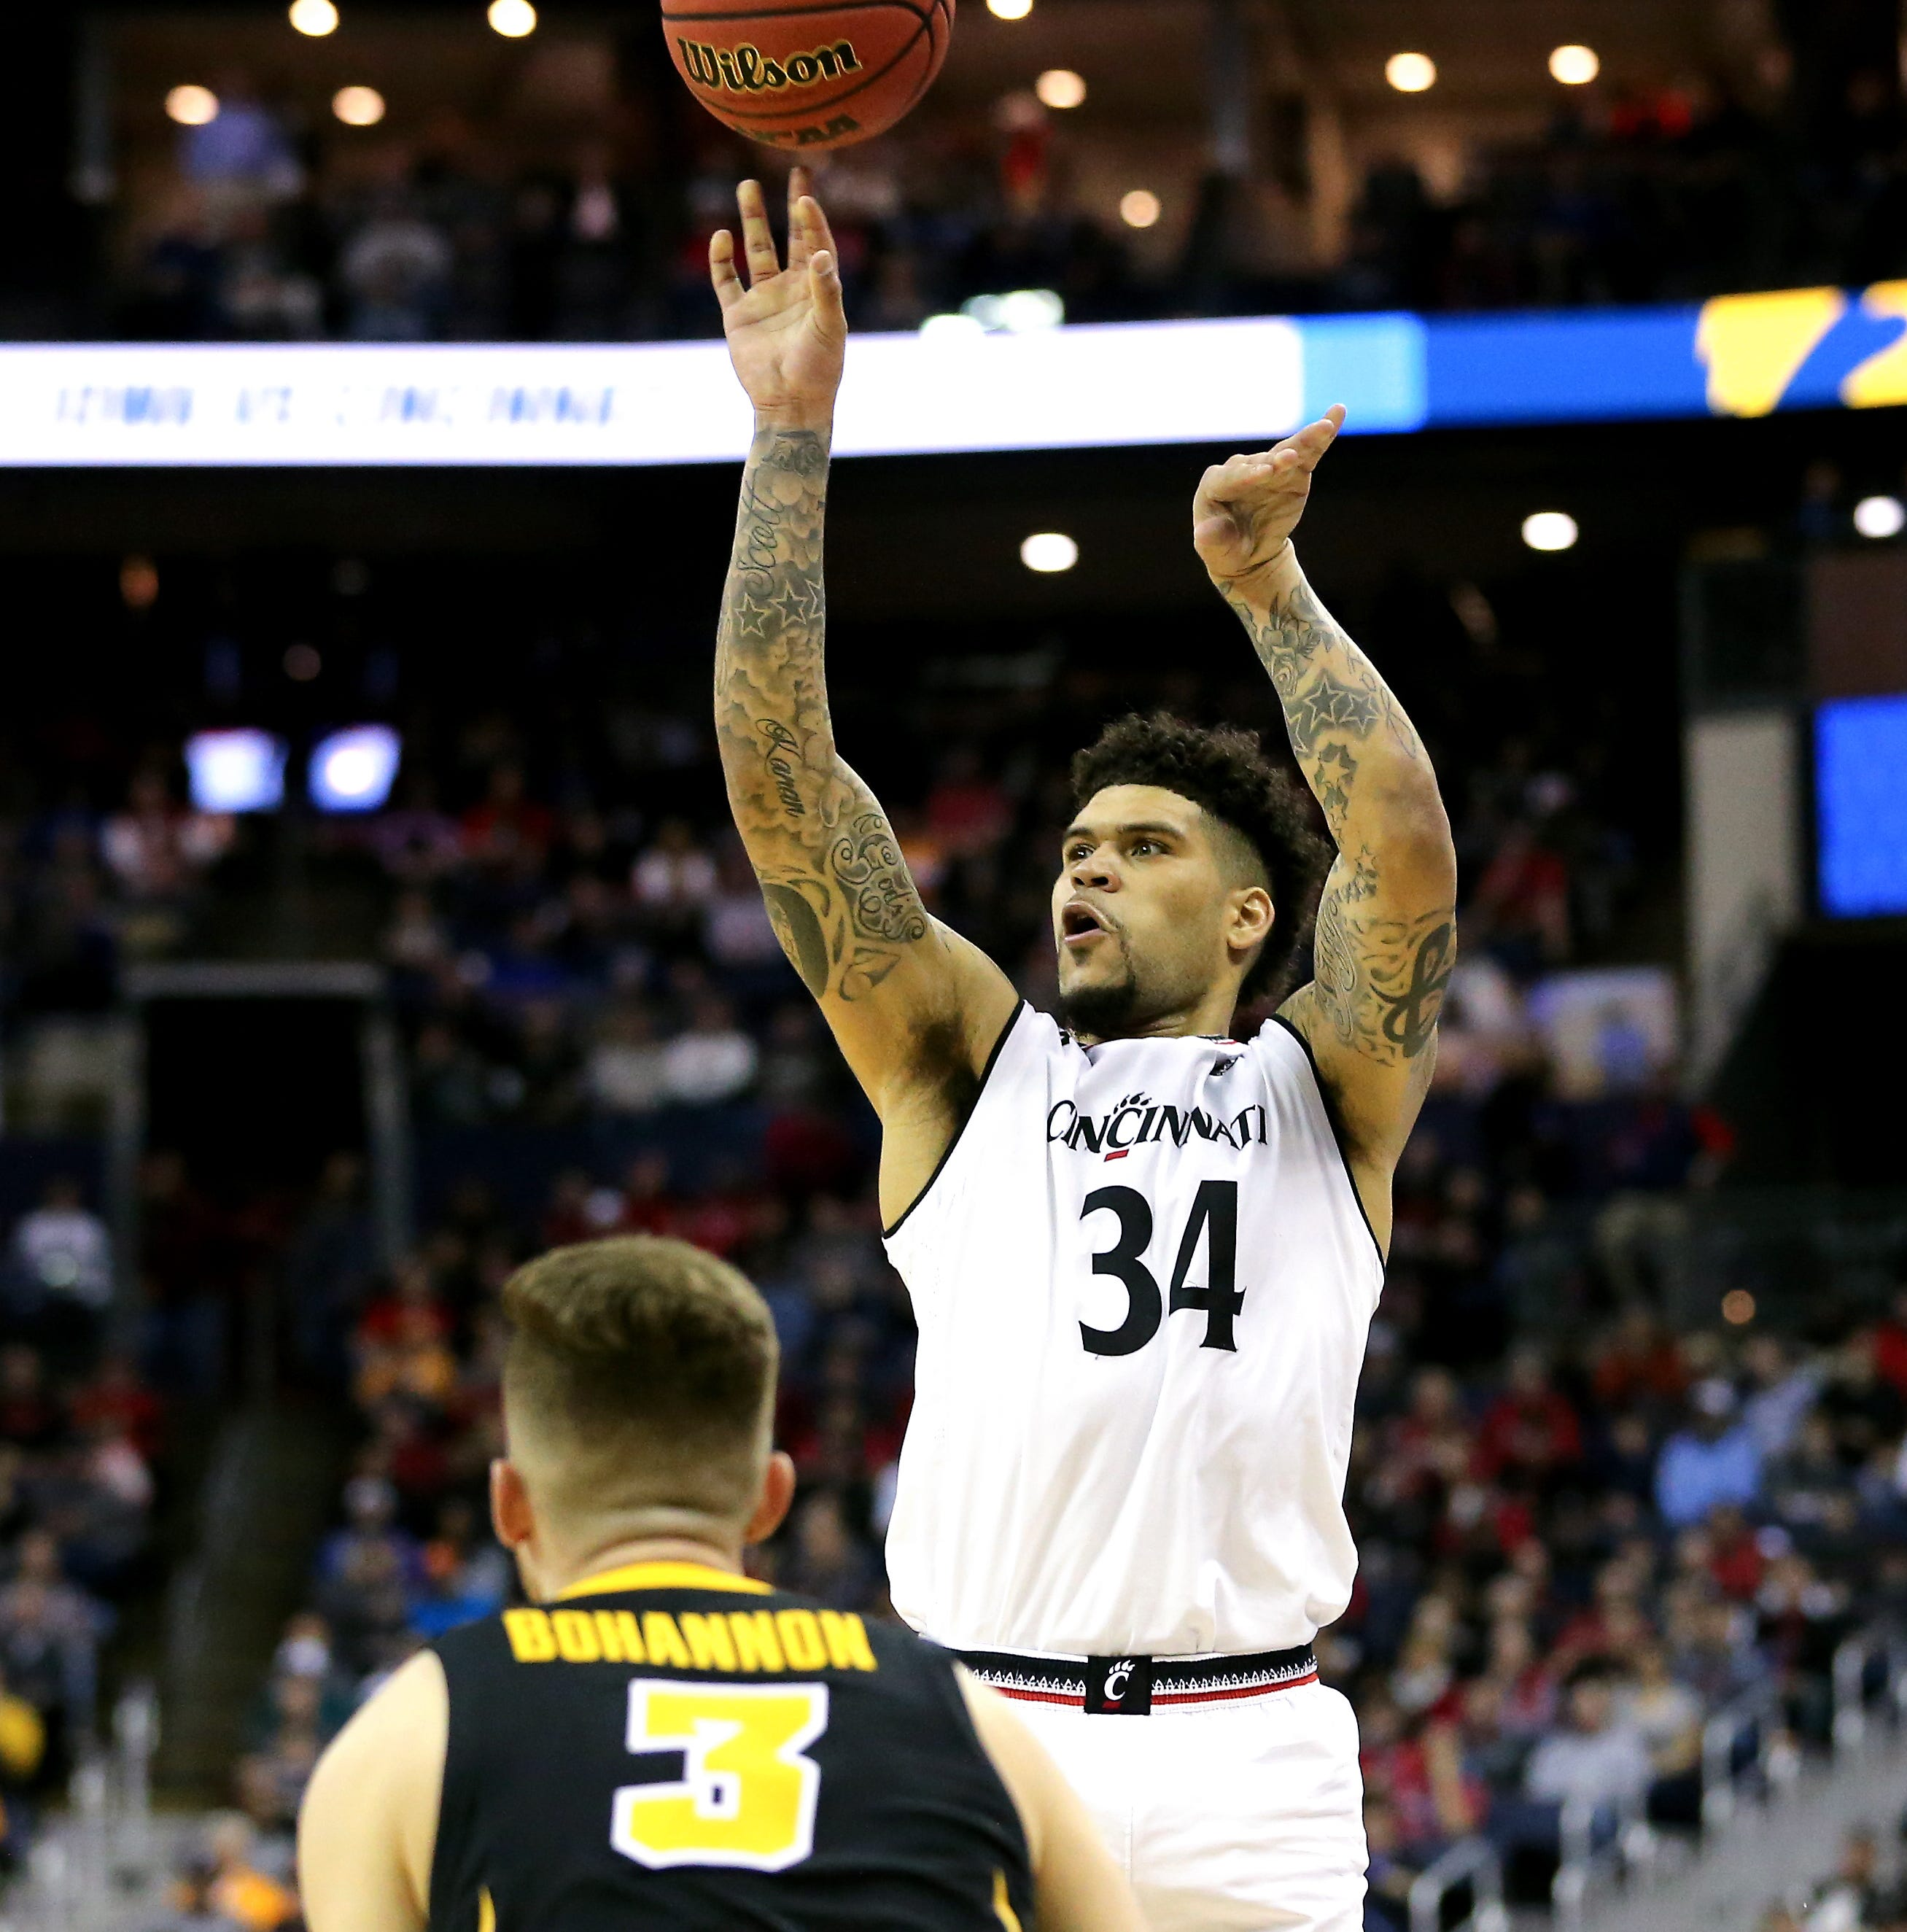 University of Cincinnati's Jarron Cumberland to test NBA draft waters